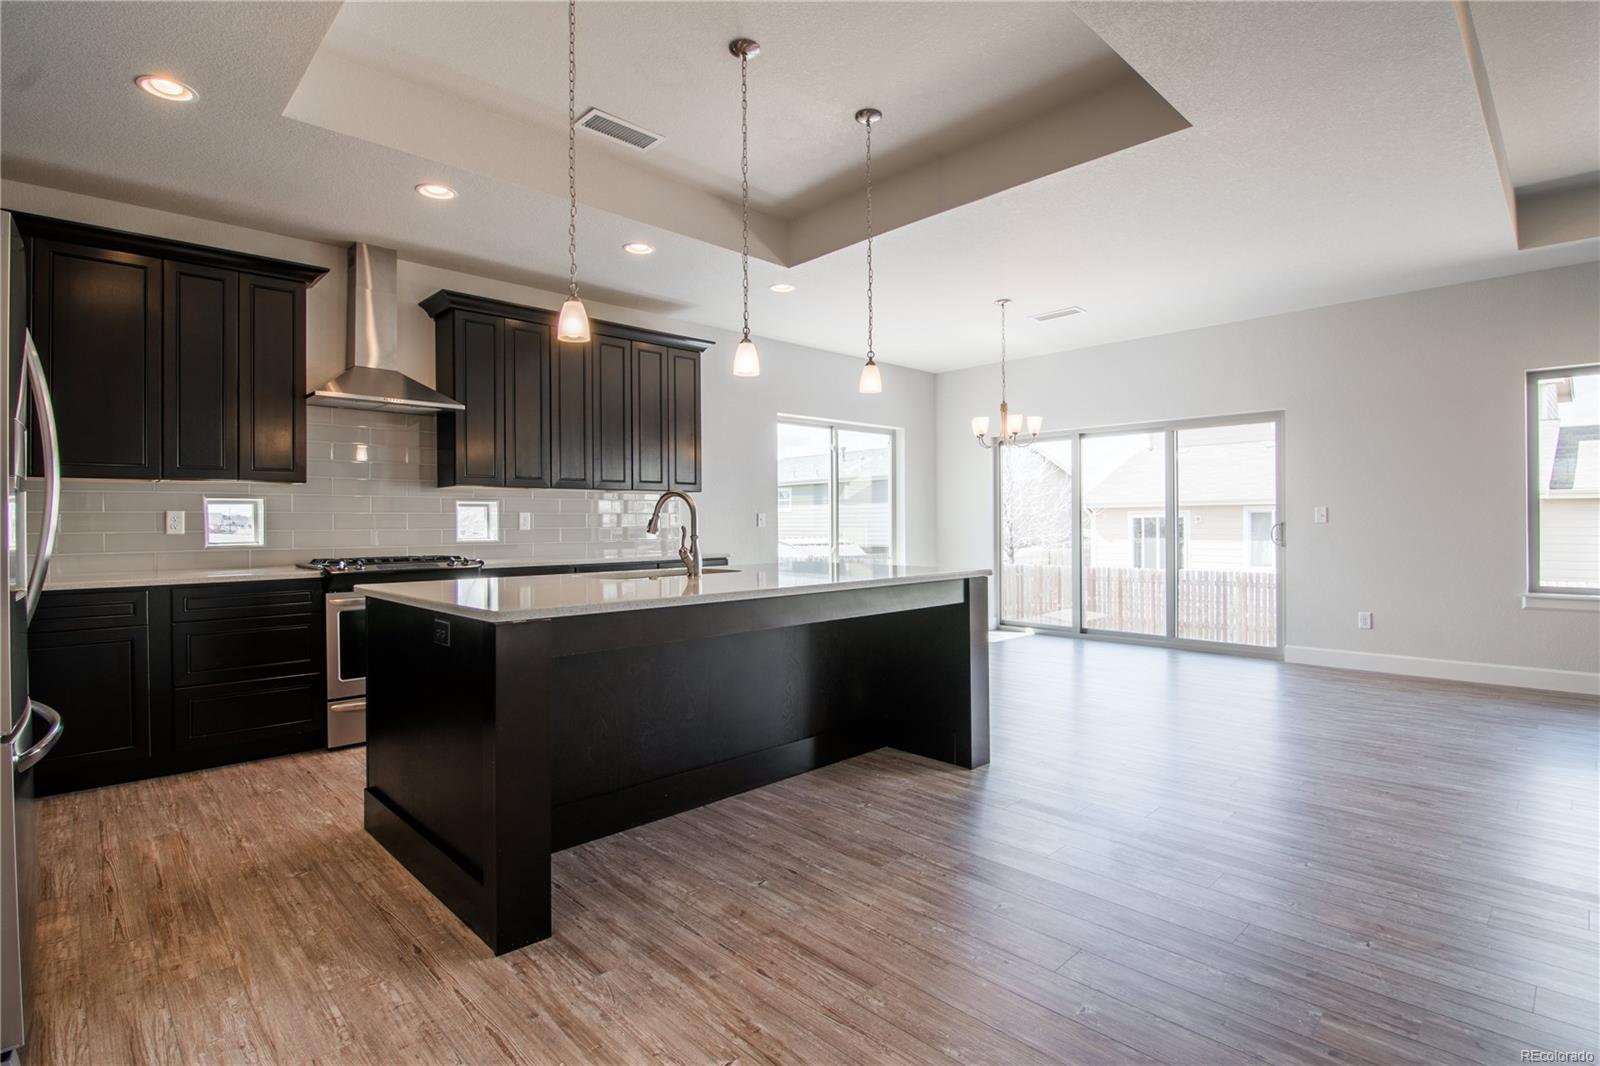 kitchen with hardwood floor and open space